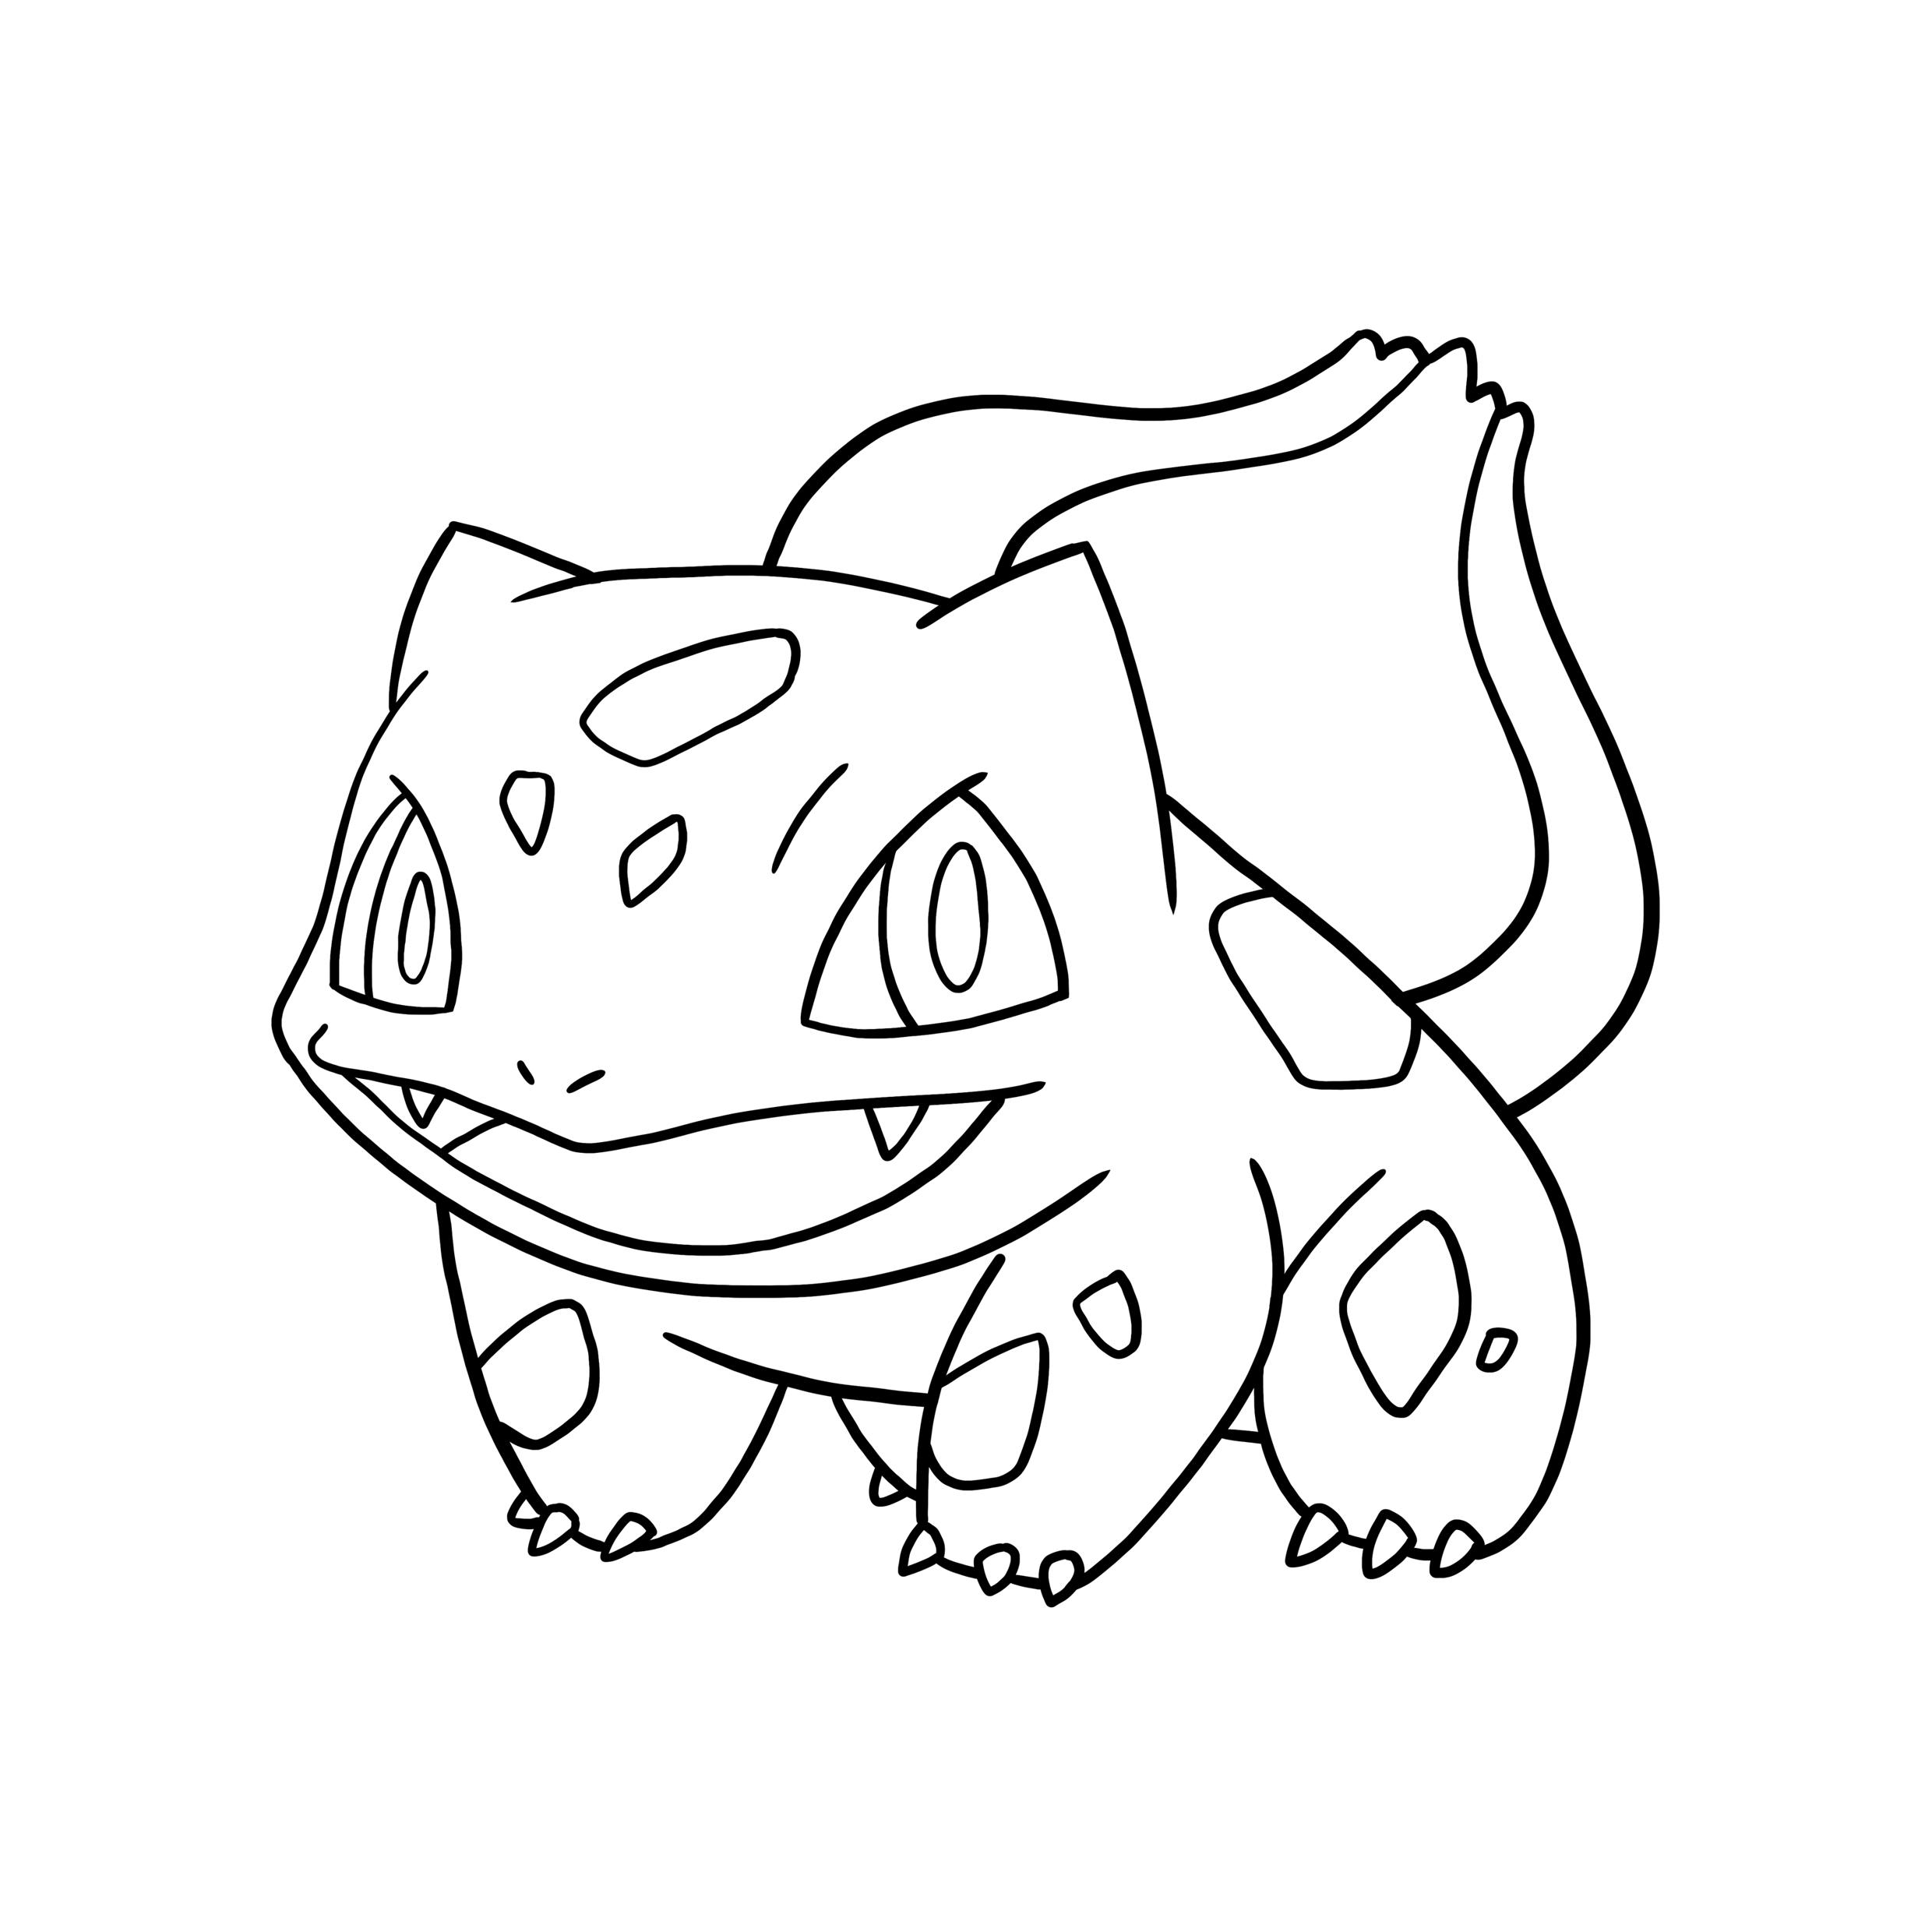 bulbasaur coloring pages coloring home Pokemon Squirtle Coloring Pages  Bulbasaur Pokemon Coloring Pages